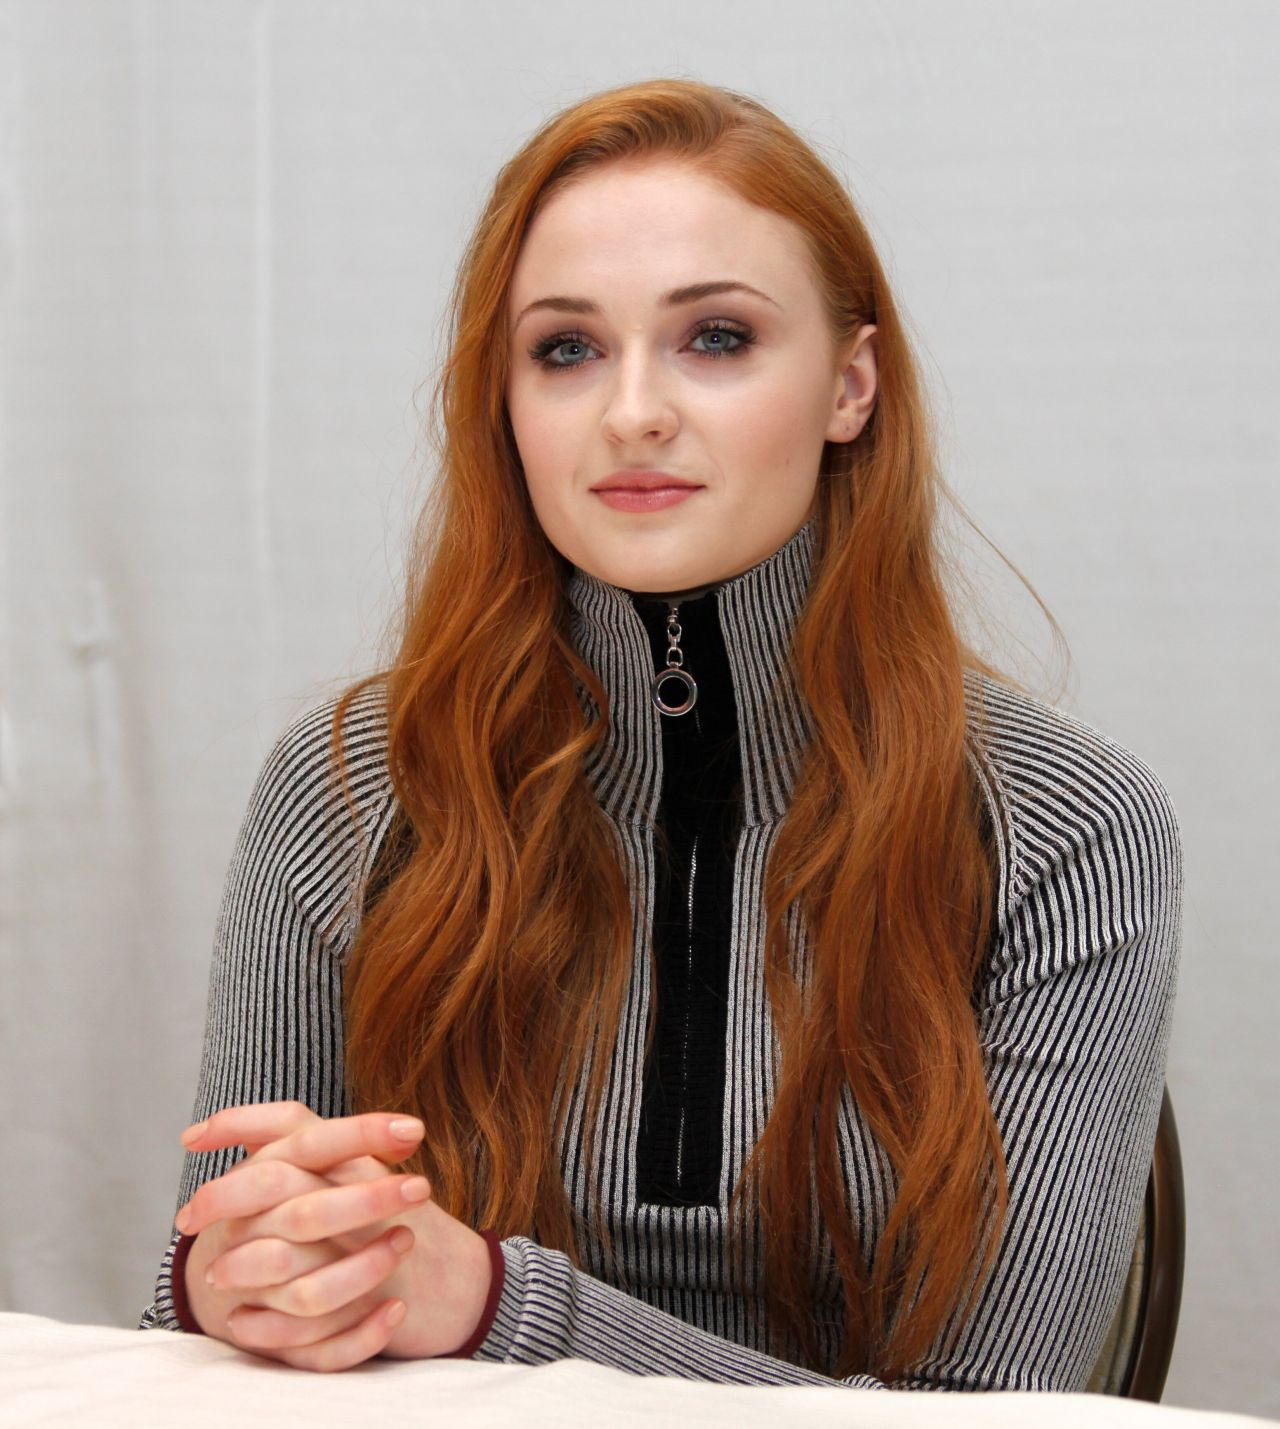 Sophie Turner Game Of Thrones Instagram Sophie 789 Pictures to pin on